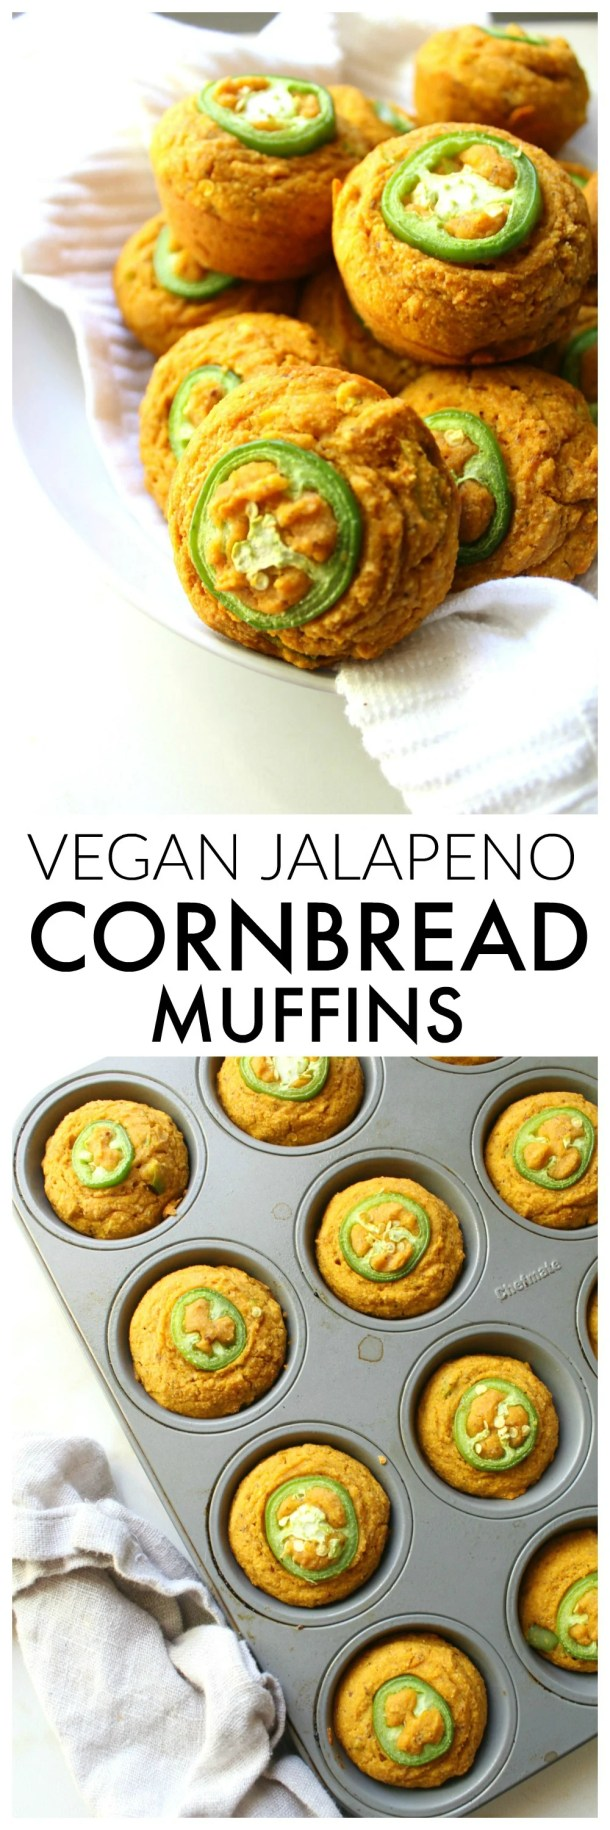 These Vegan Jalapeño Cornbread Muffins are the perfect combo of spicy and sweet. Serve with vegan butter for a delicious & savory side dish | ThisSavoryVegan.com #thanksgiving #vegan